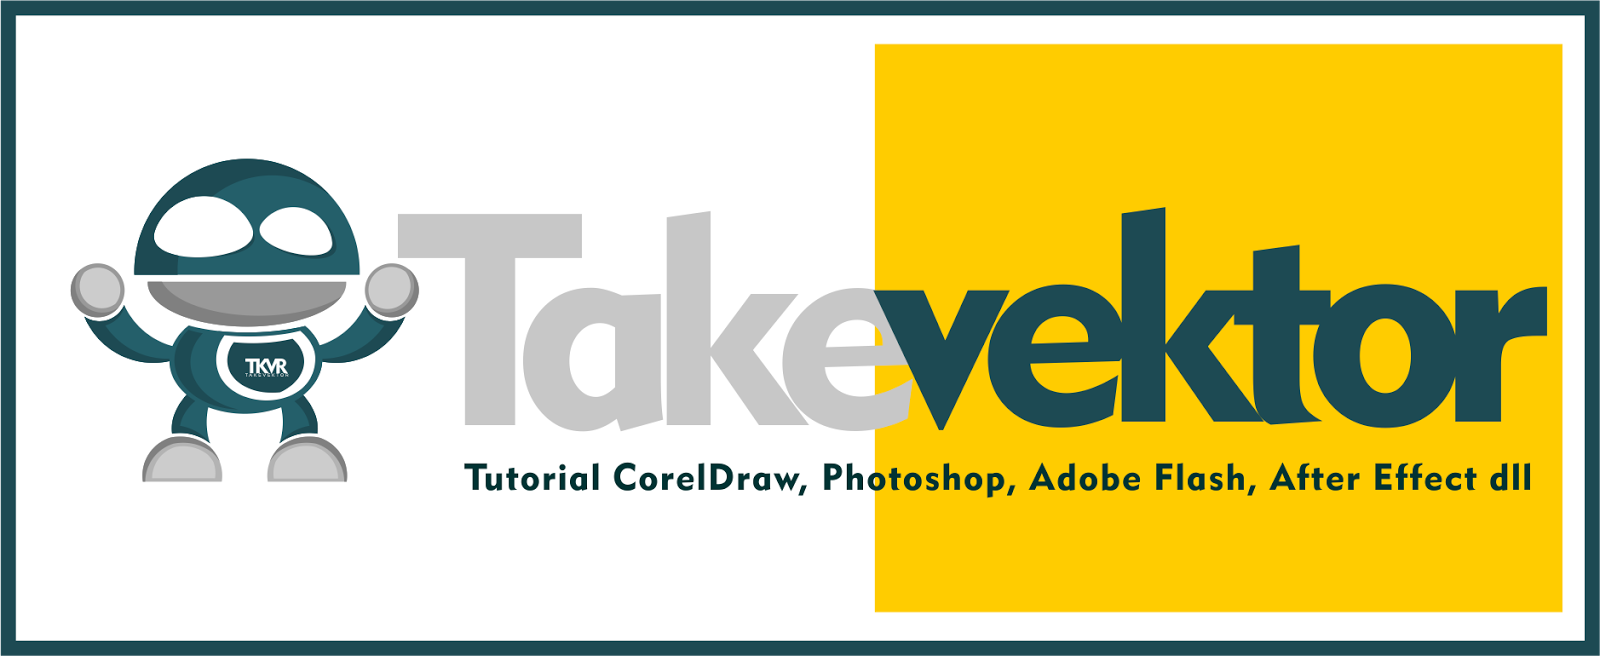 TAKEVEKTOR | Tutorial Corel Draw, Photoshop, Adobe Flash, After Effect dll